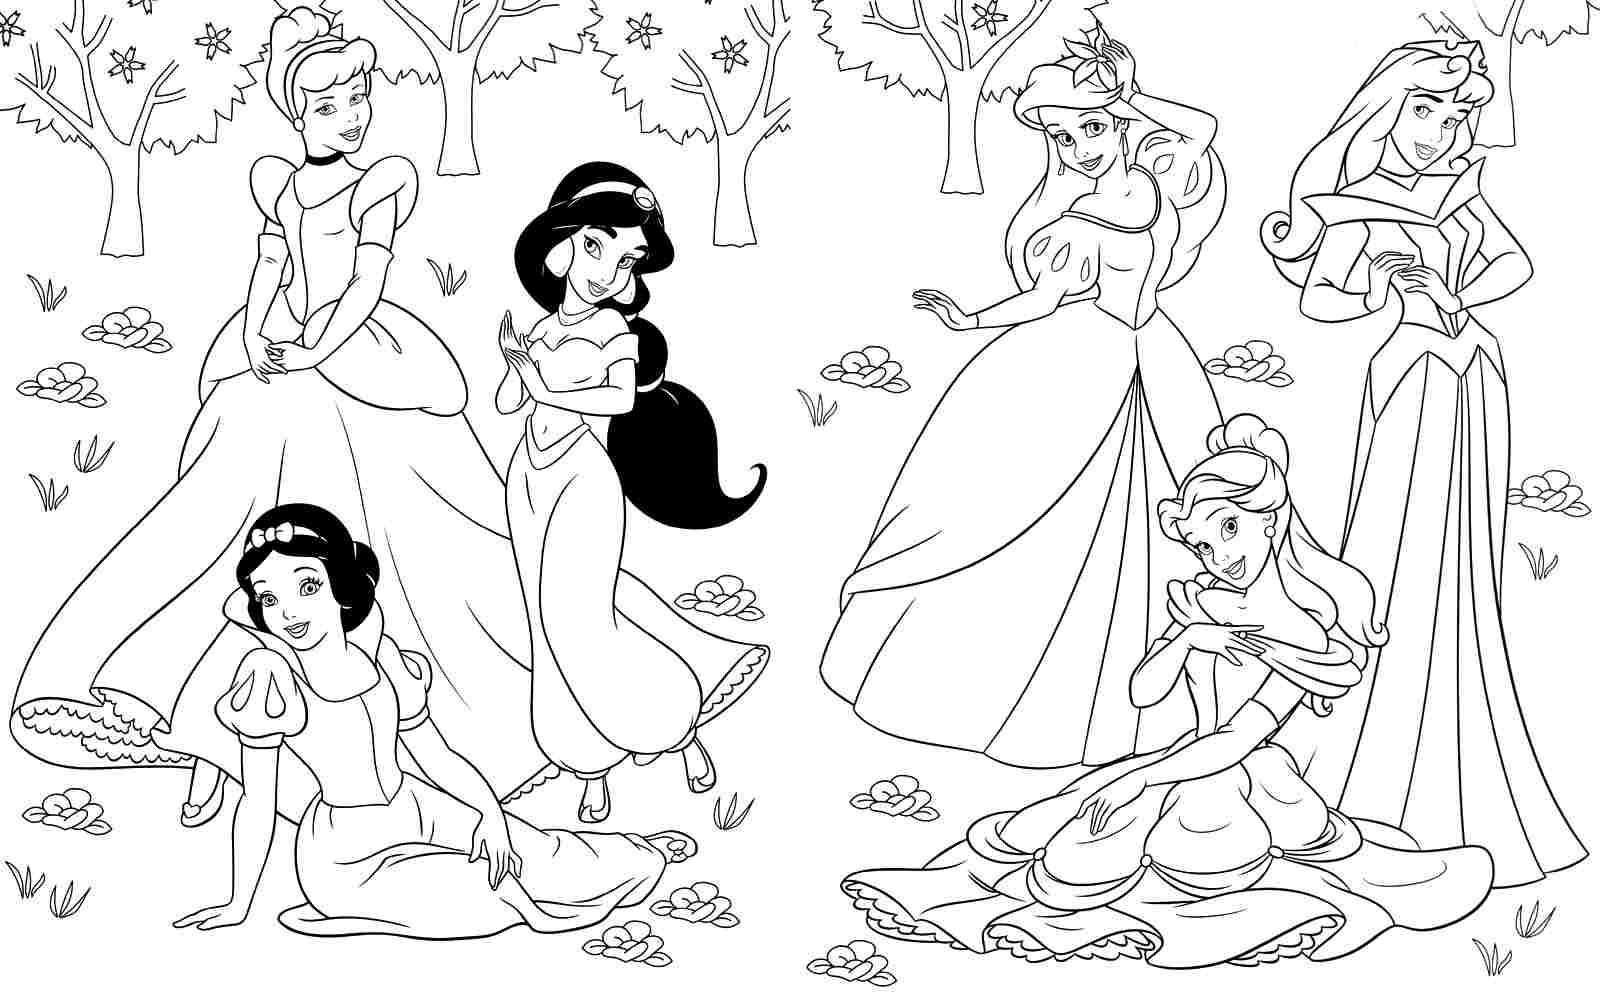 Disney princess coloring book for adults - Of Disney Princess Coloring Pages For Kids And For Adults